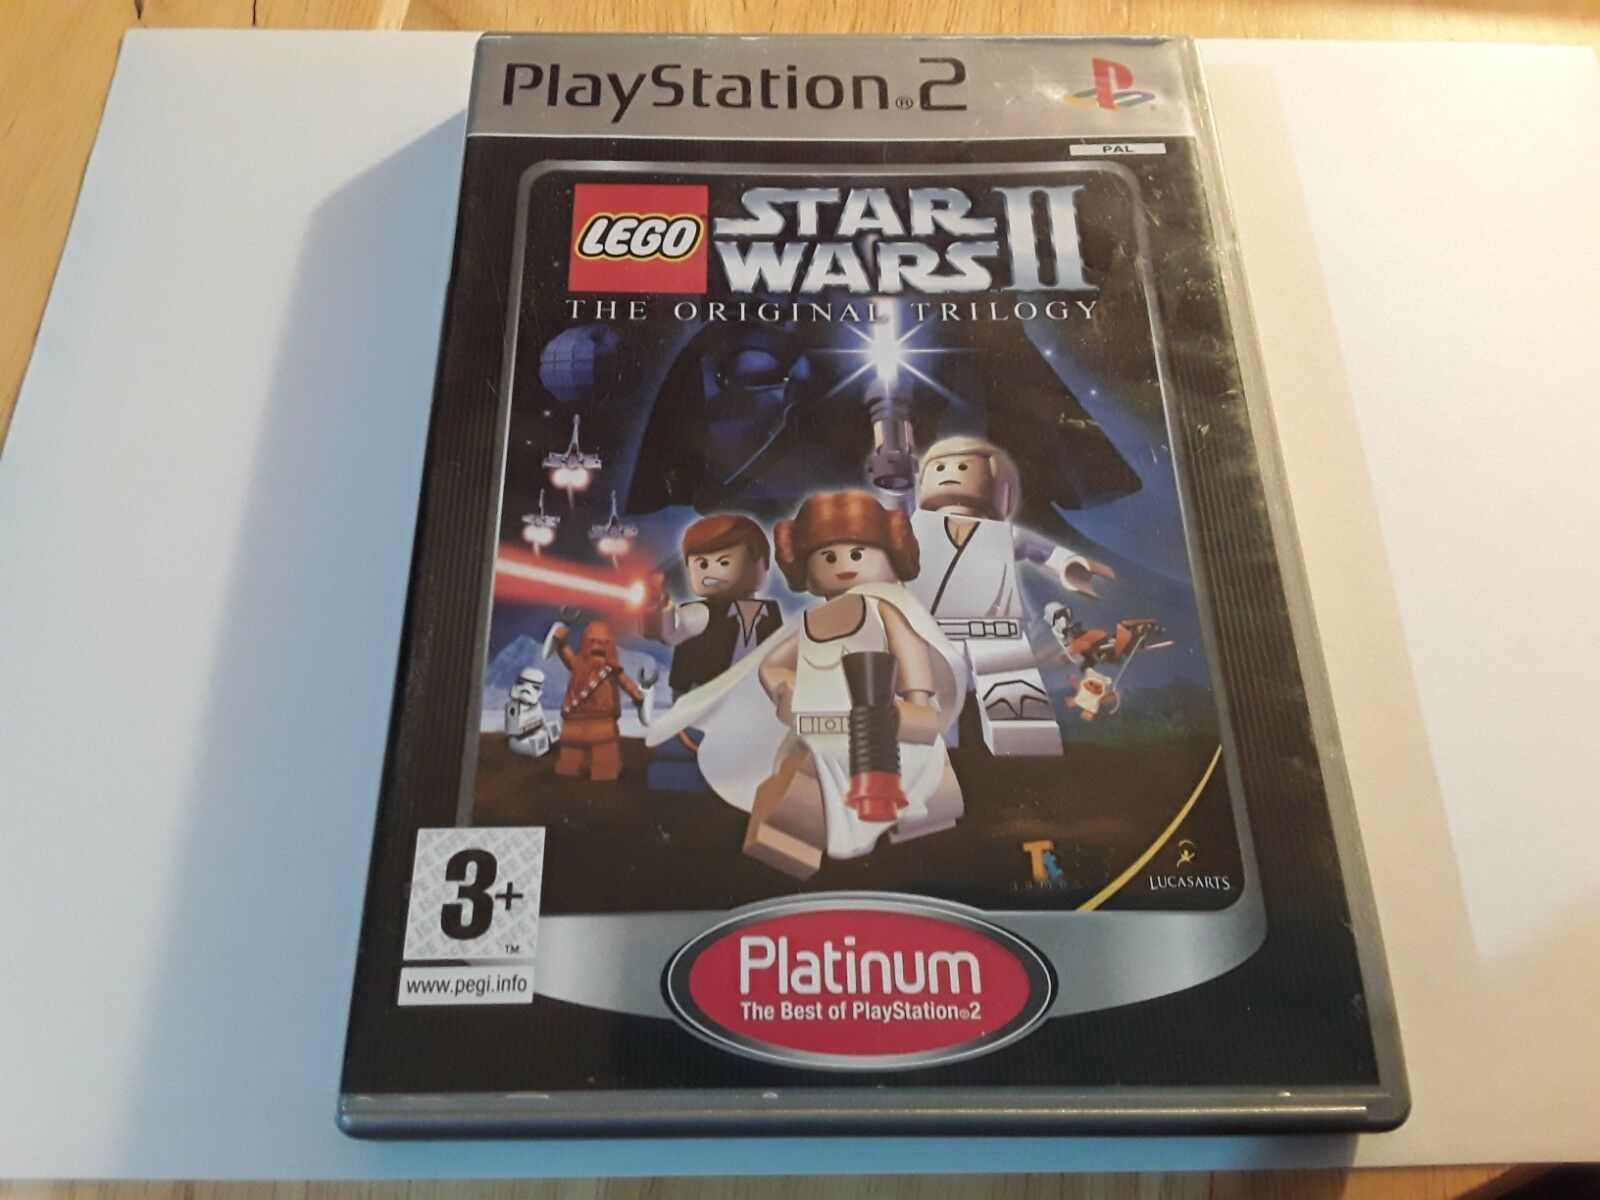 LEGO STAR WARS 2 PS2 GAME! WITHOUT MANUAL, - Occasion StarWars